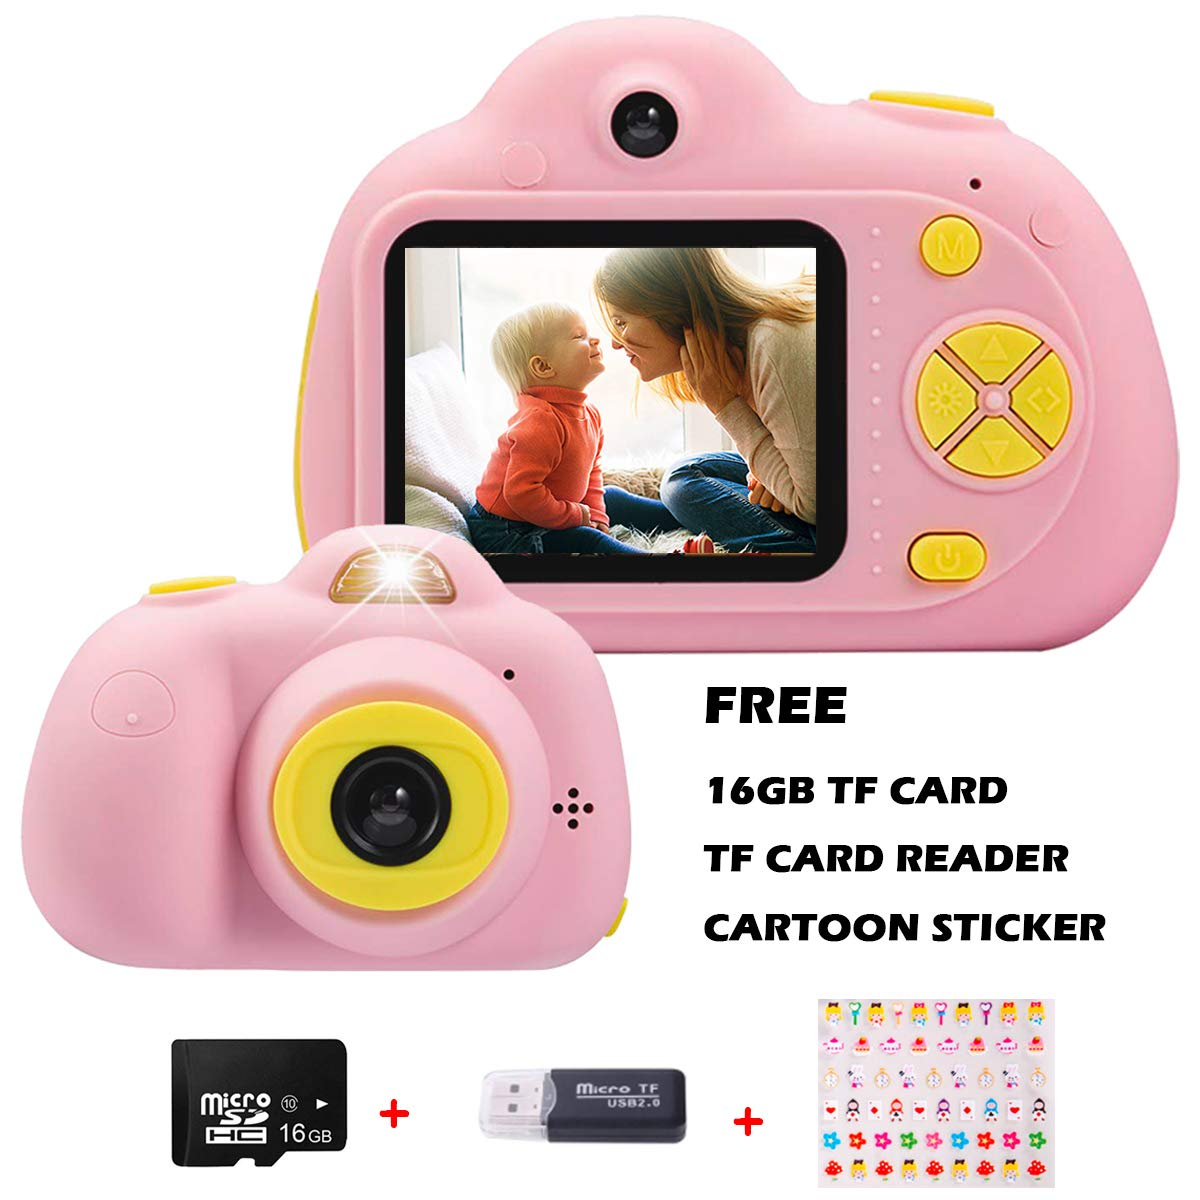 KIDOVE Kids Toys Fun Camera, Waterproof & Shockproof Child Selfie digital game Camcorder, 8MP 1080P dual camera Video Recorder, Creative Birthday Gifts for girls and boys, 16GB TF Card Included (Pink)